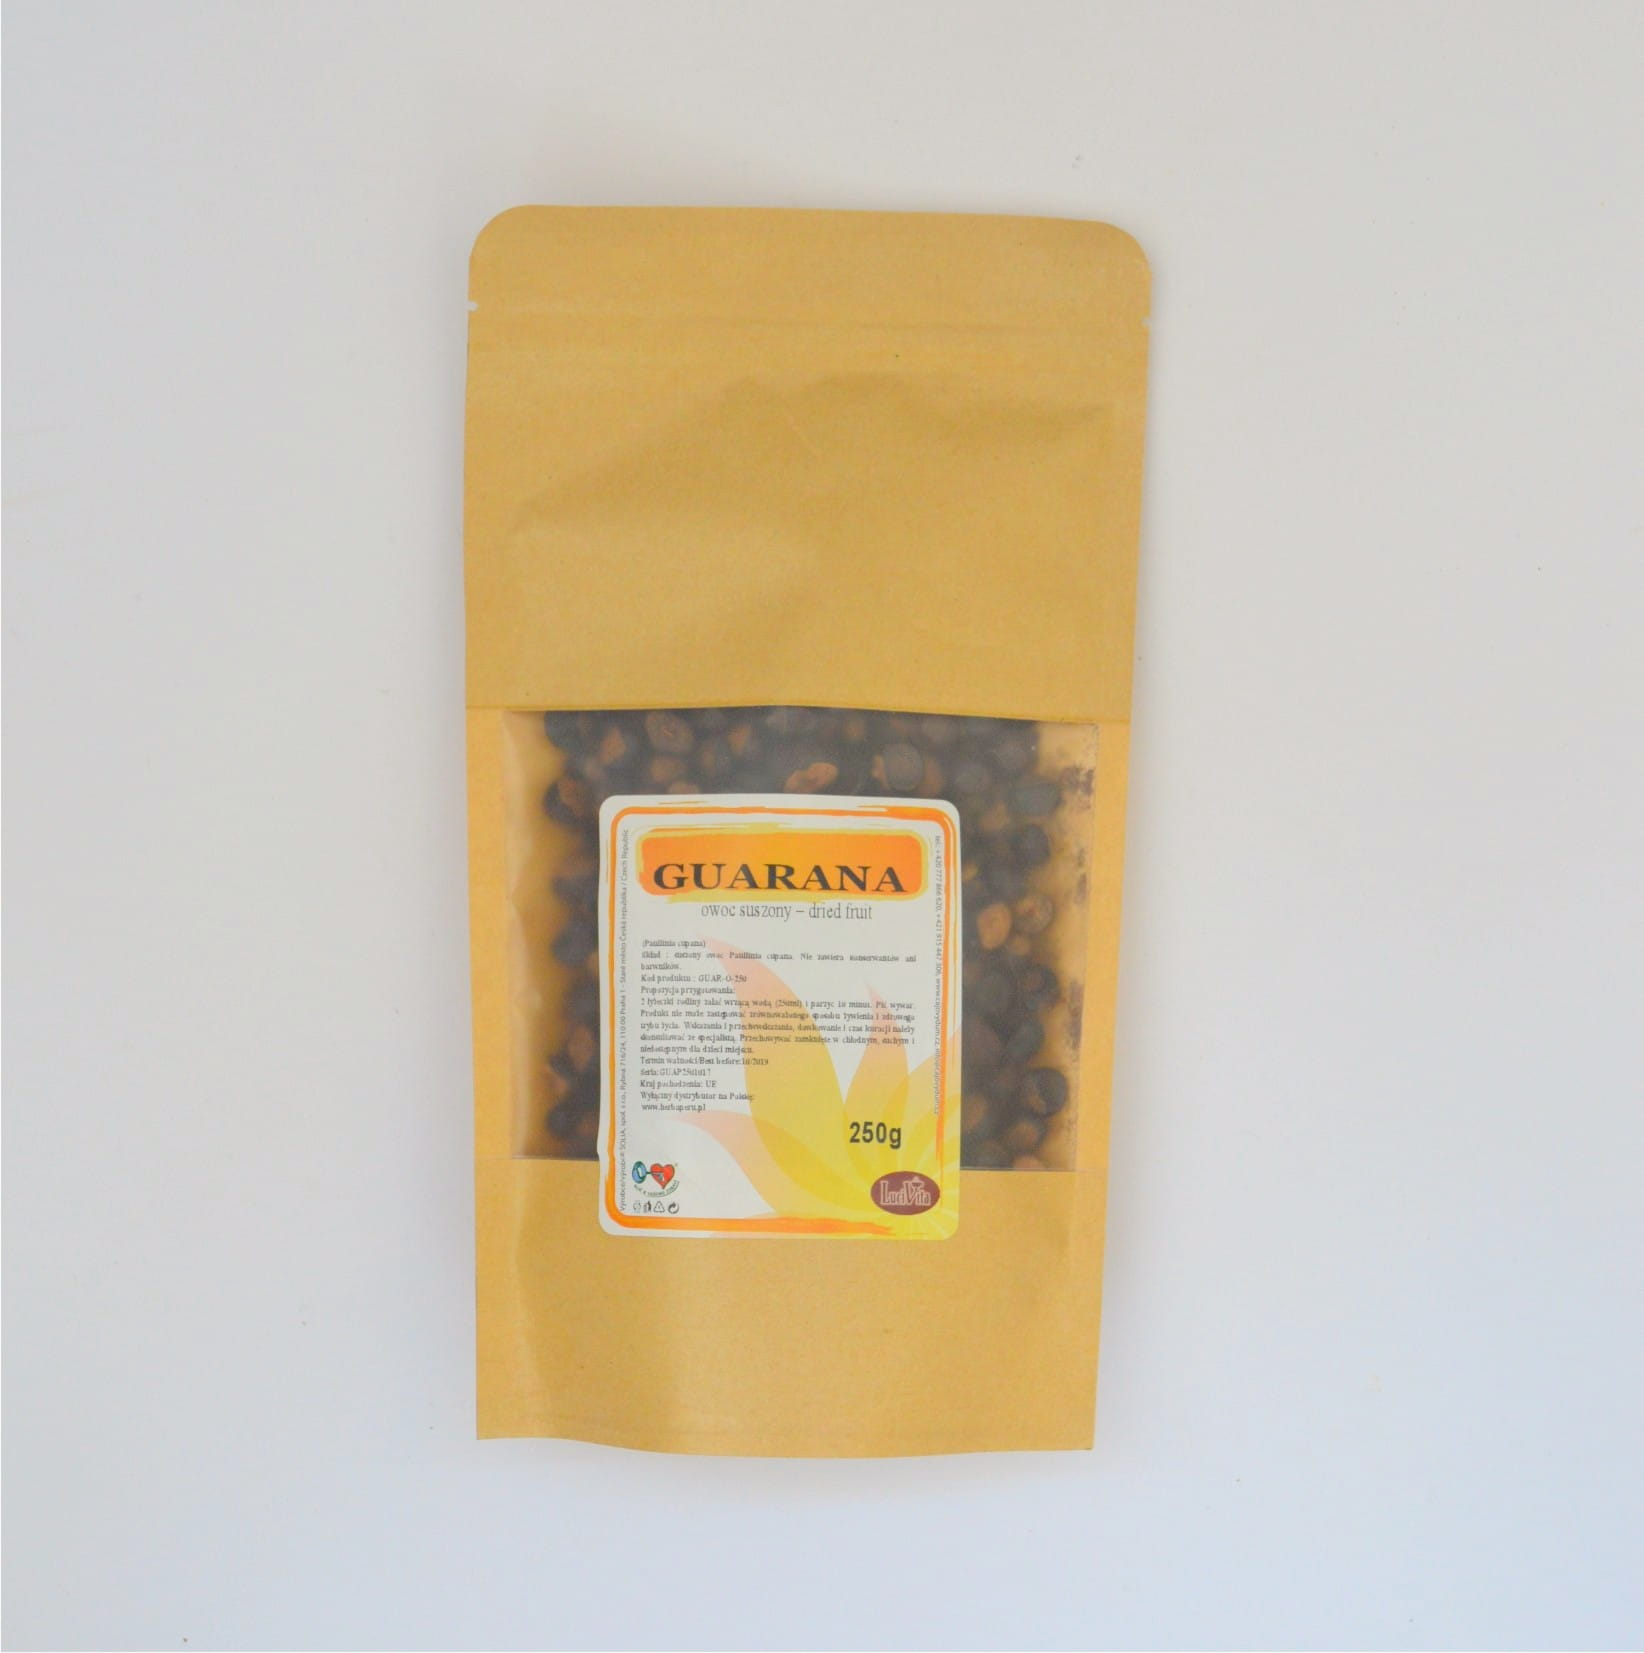 Guarana - dried fruit - 250g